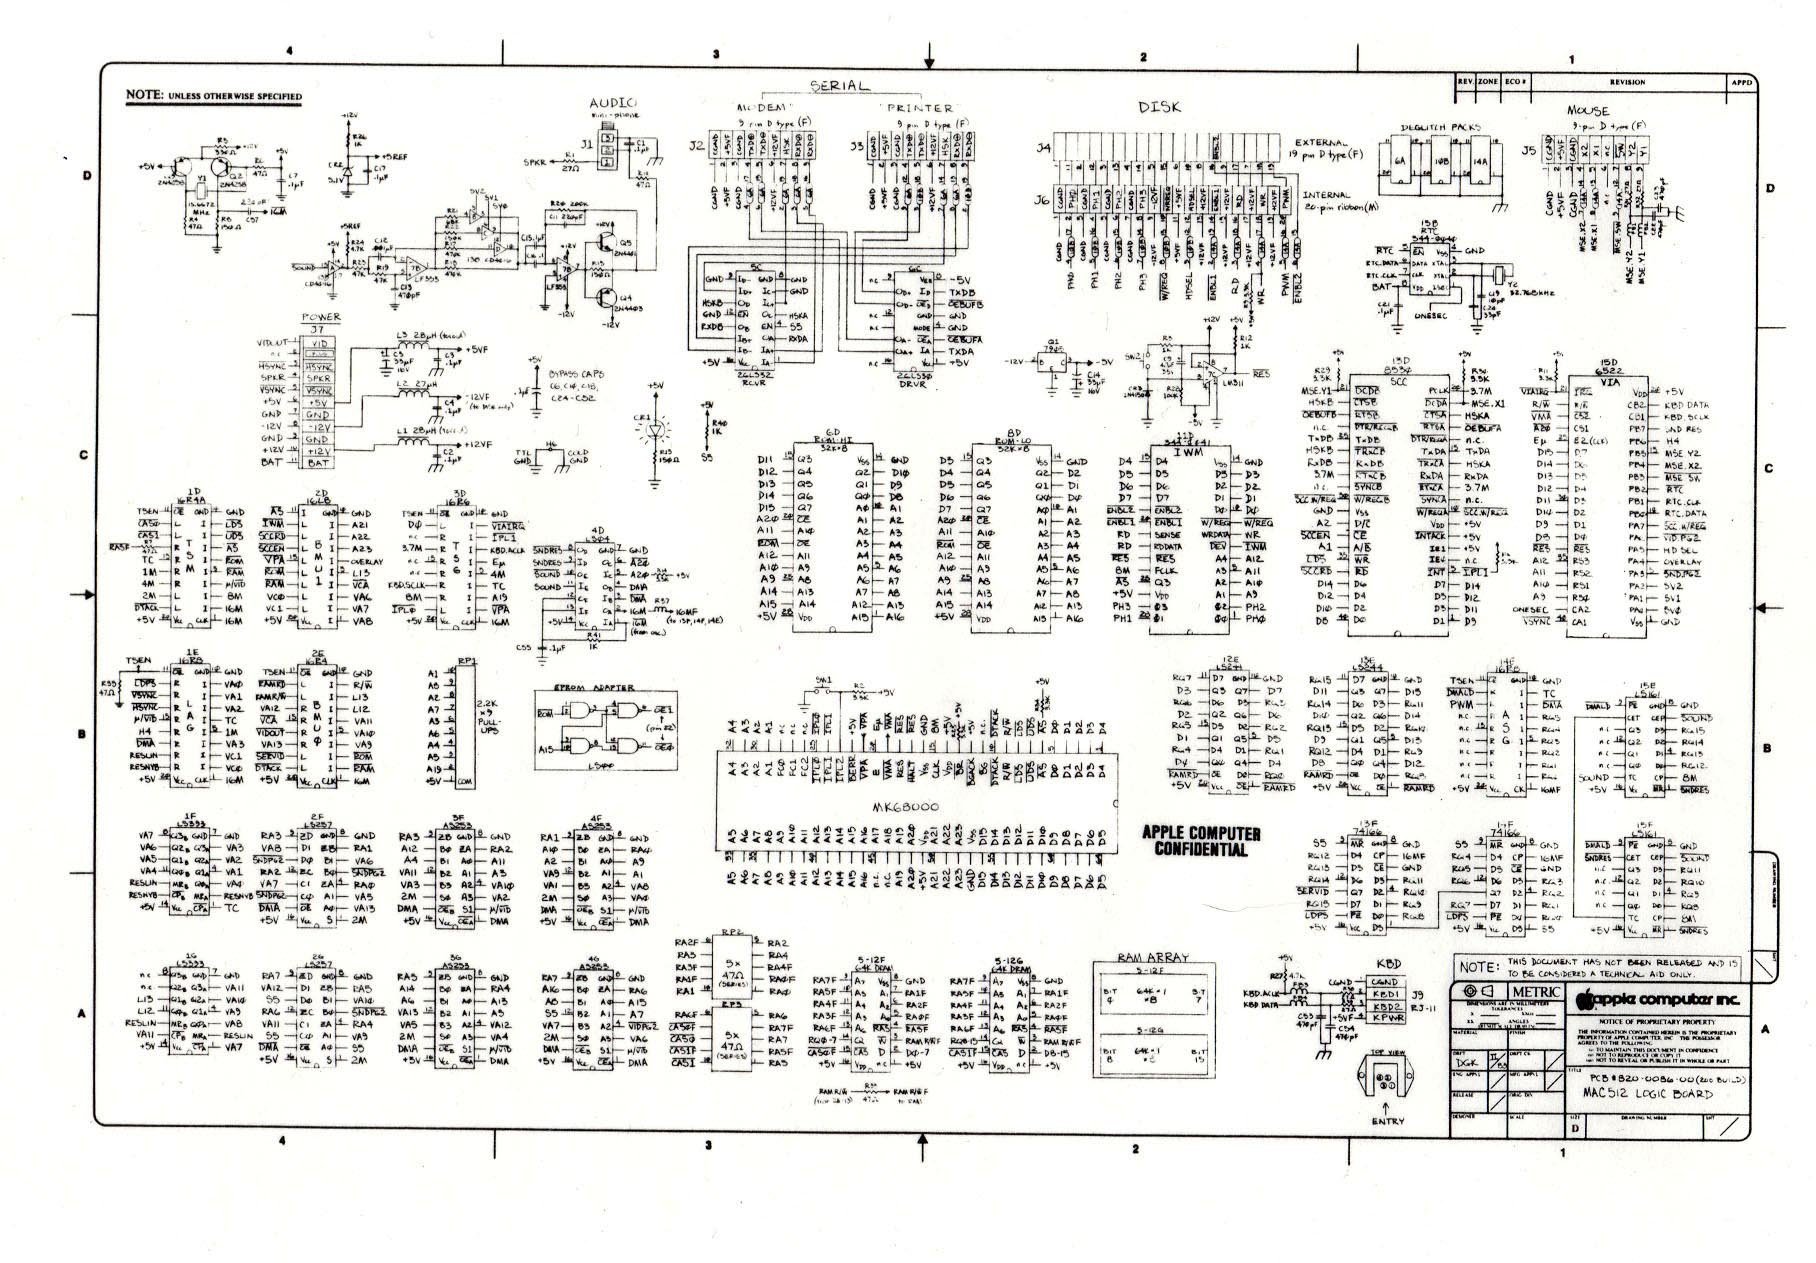 keyboard schematic with Mac 512klogicboard on Ps2 mouse and basic st   puter together with Mac 512klogicboard moreover Keyboard Not Working On Raspberry Pi 2 Model B furthermore TRS80 Model 100 further Ldf9810st 10.